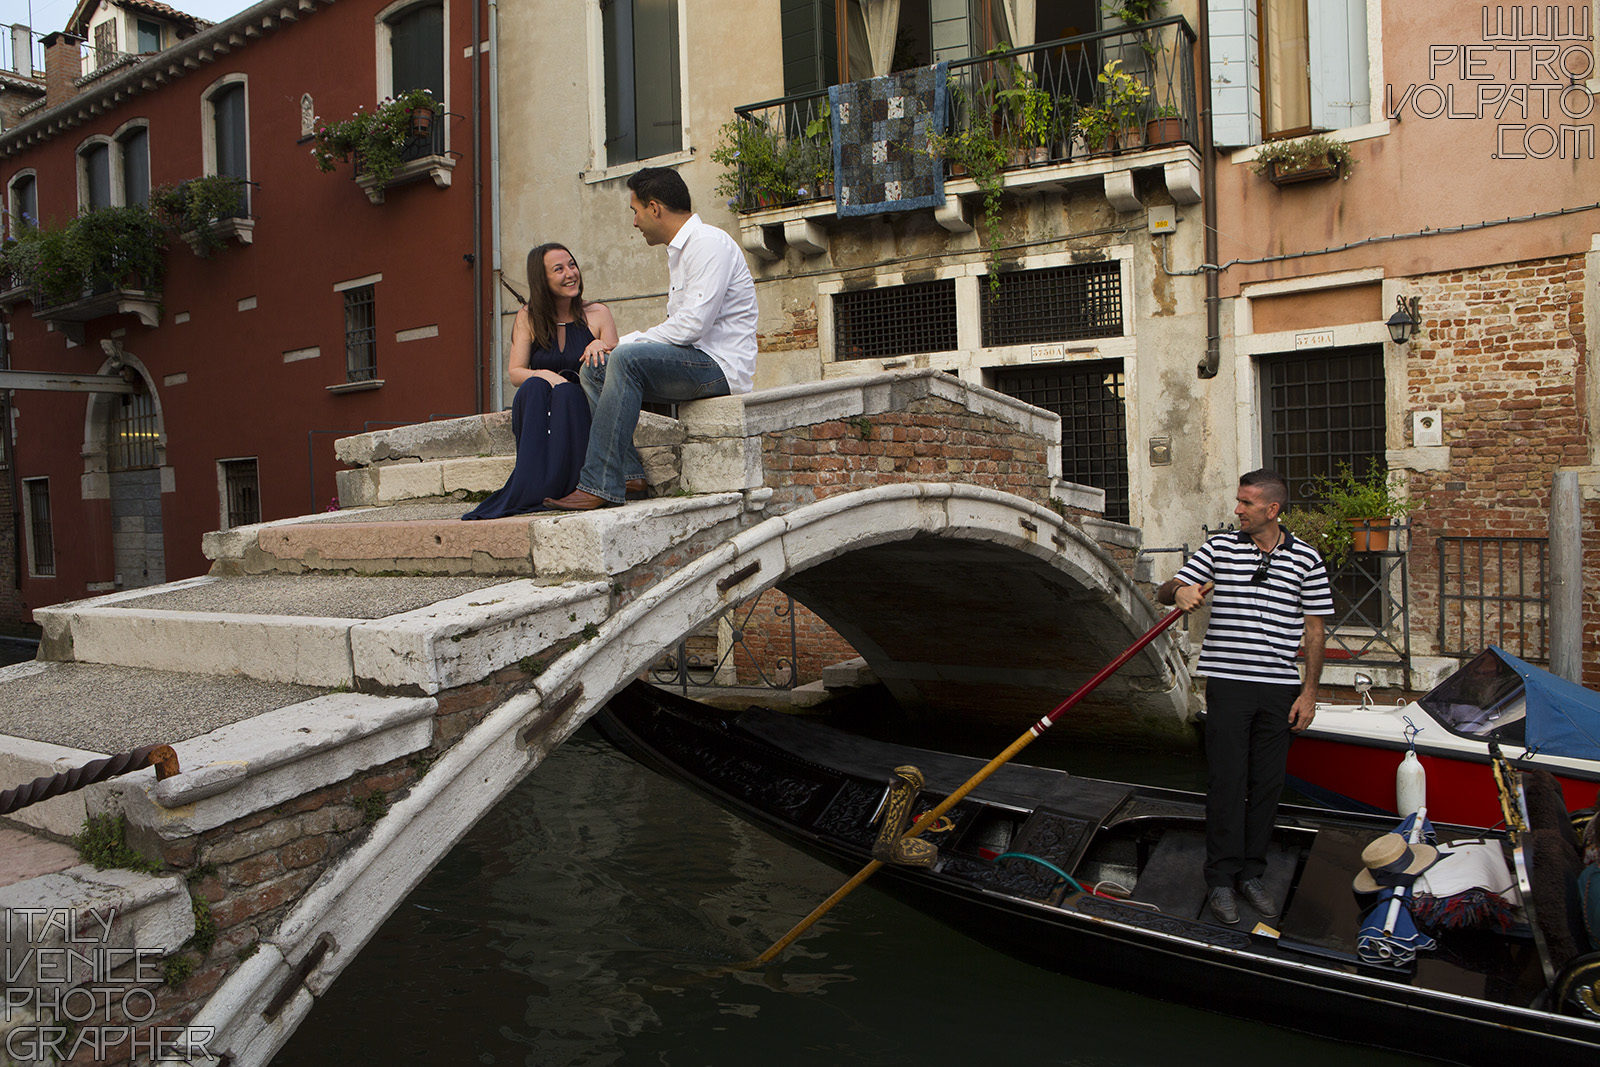 Photographer in Venice Italy for a vacation photo shoot during a walking tour and gondola ride - romantic and fun couple photo walk in Venice